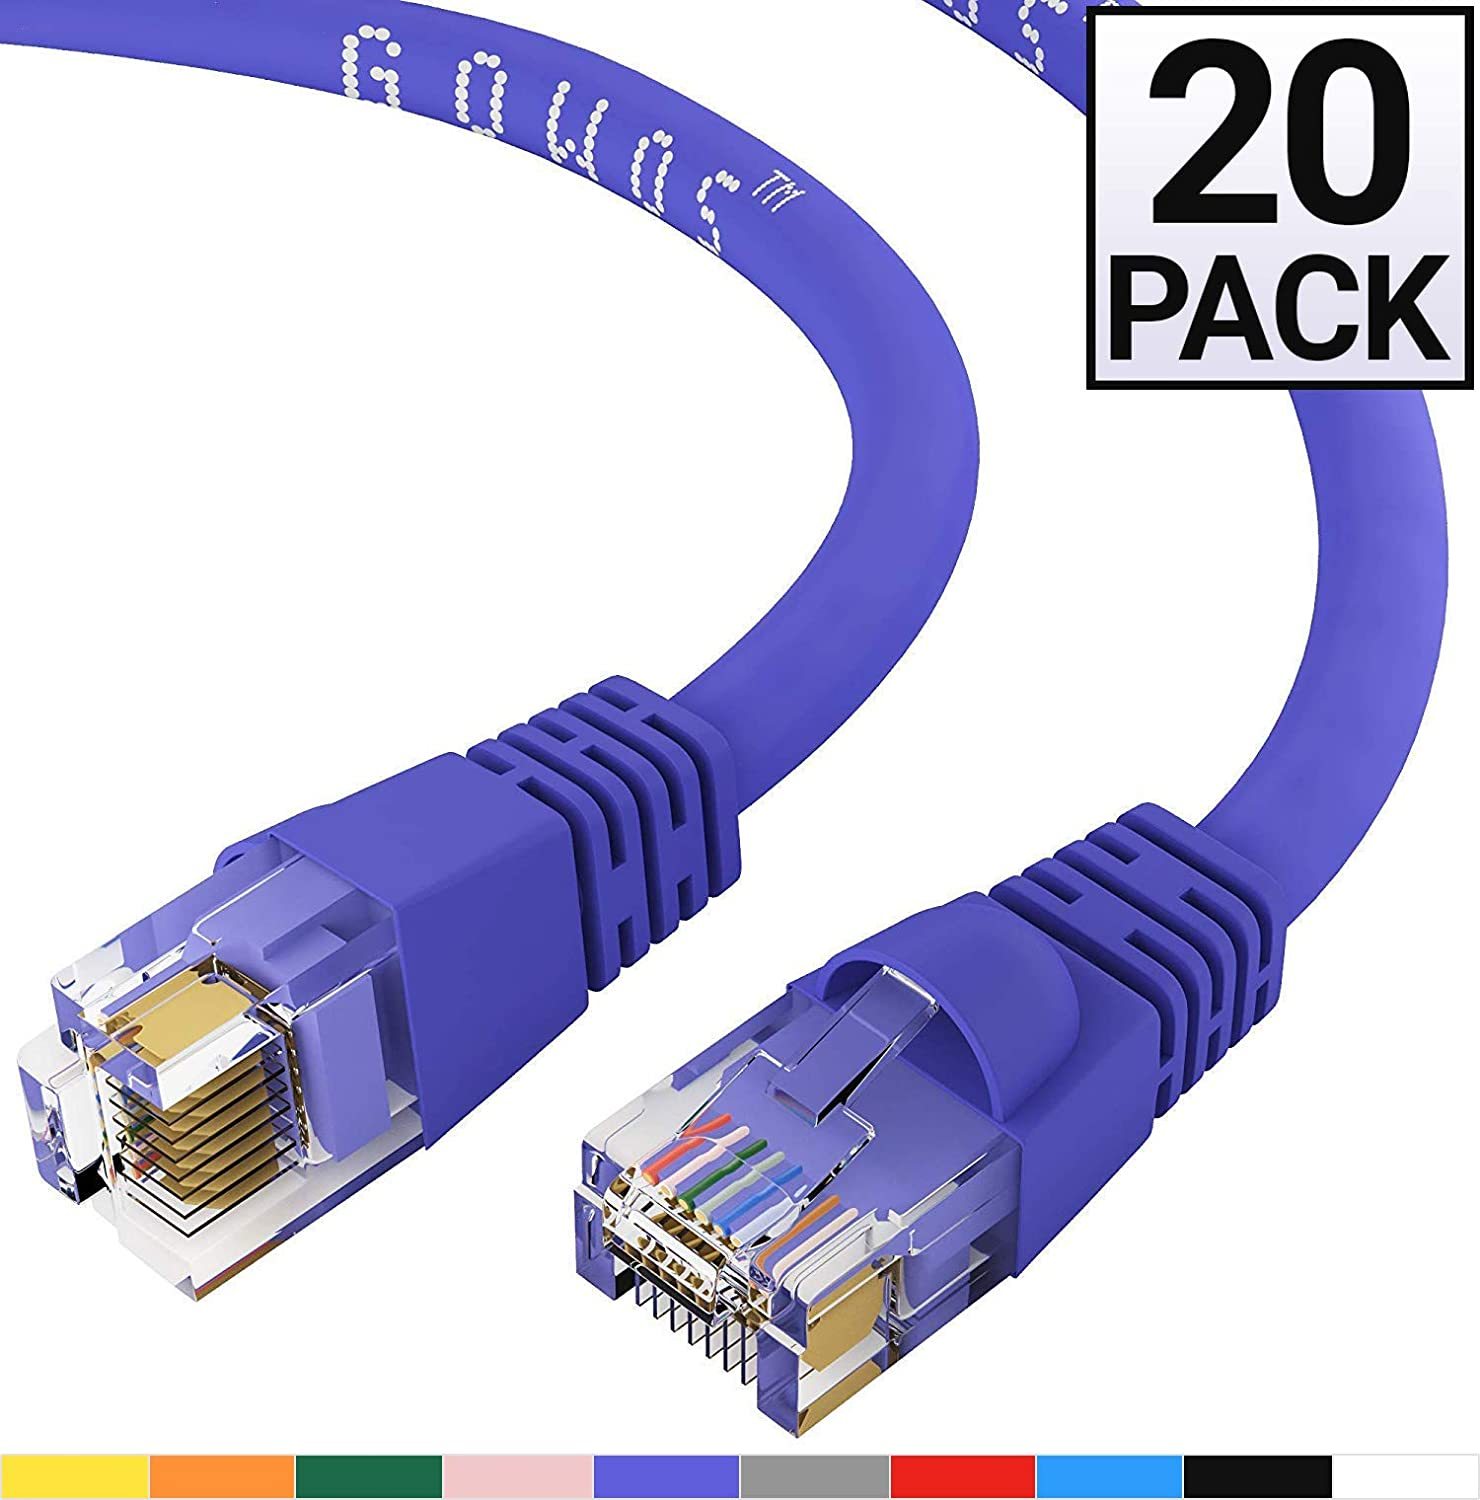 Blue 1Gigabit//Sec High Speed LAN Internet//Patch Cable GOWOS Cat5e Ethernet Cable 24AWG Network Cable with Gold Plated RJ45 Snagless//Molded//Booted Connector 350MHz 10-Pack - 30 Feet